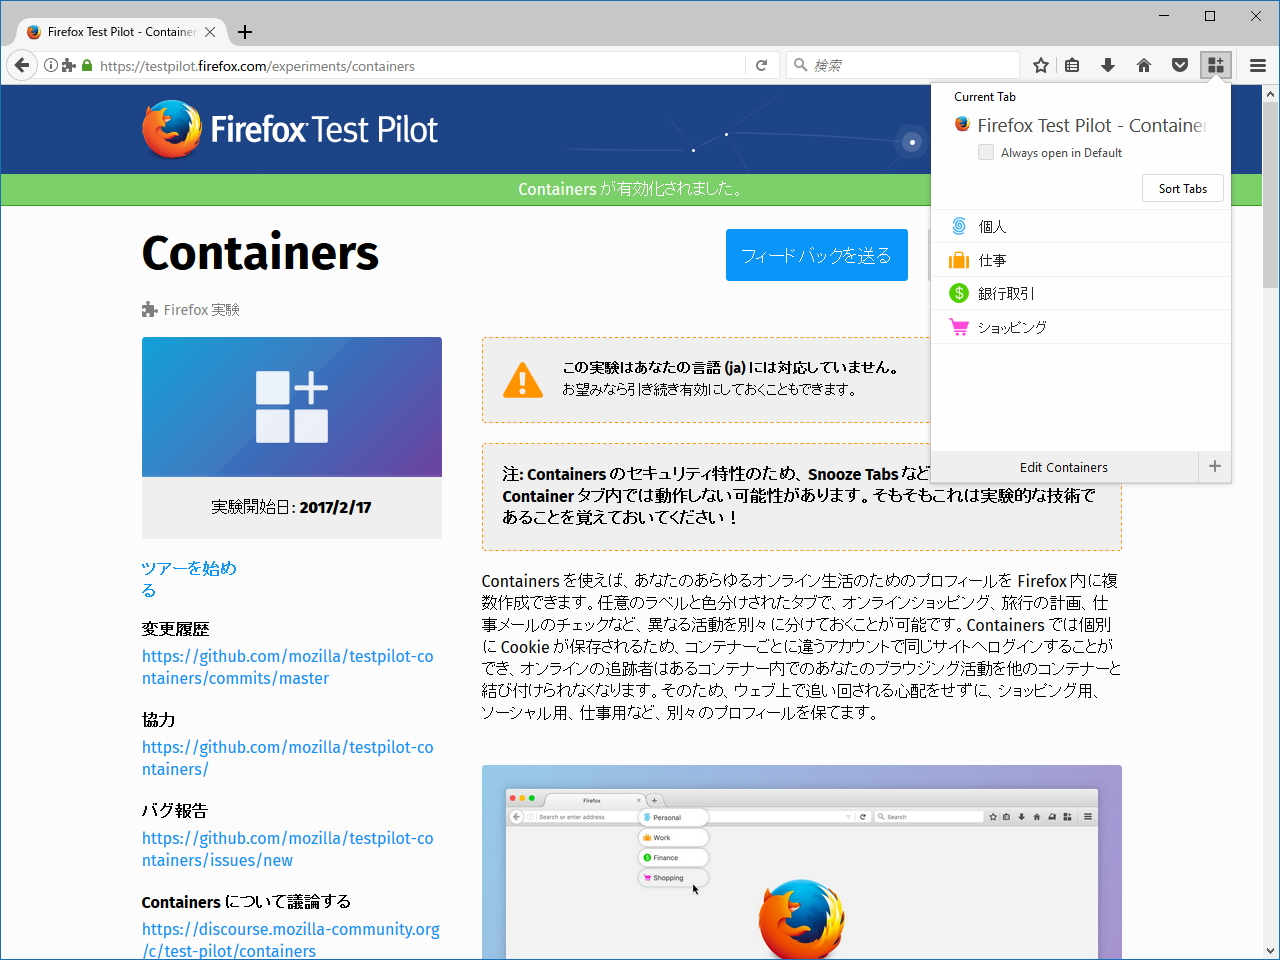 「Containers」v3.1.1